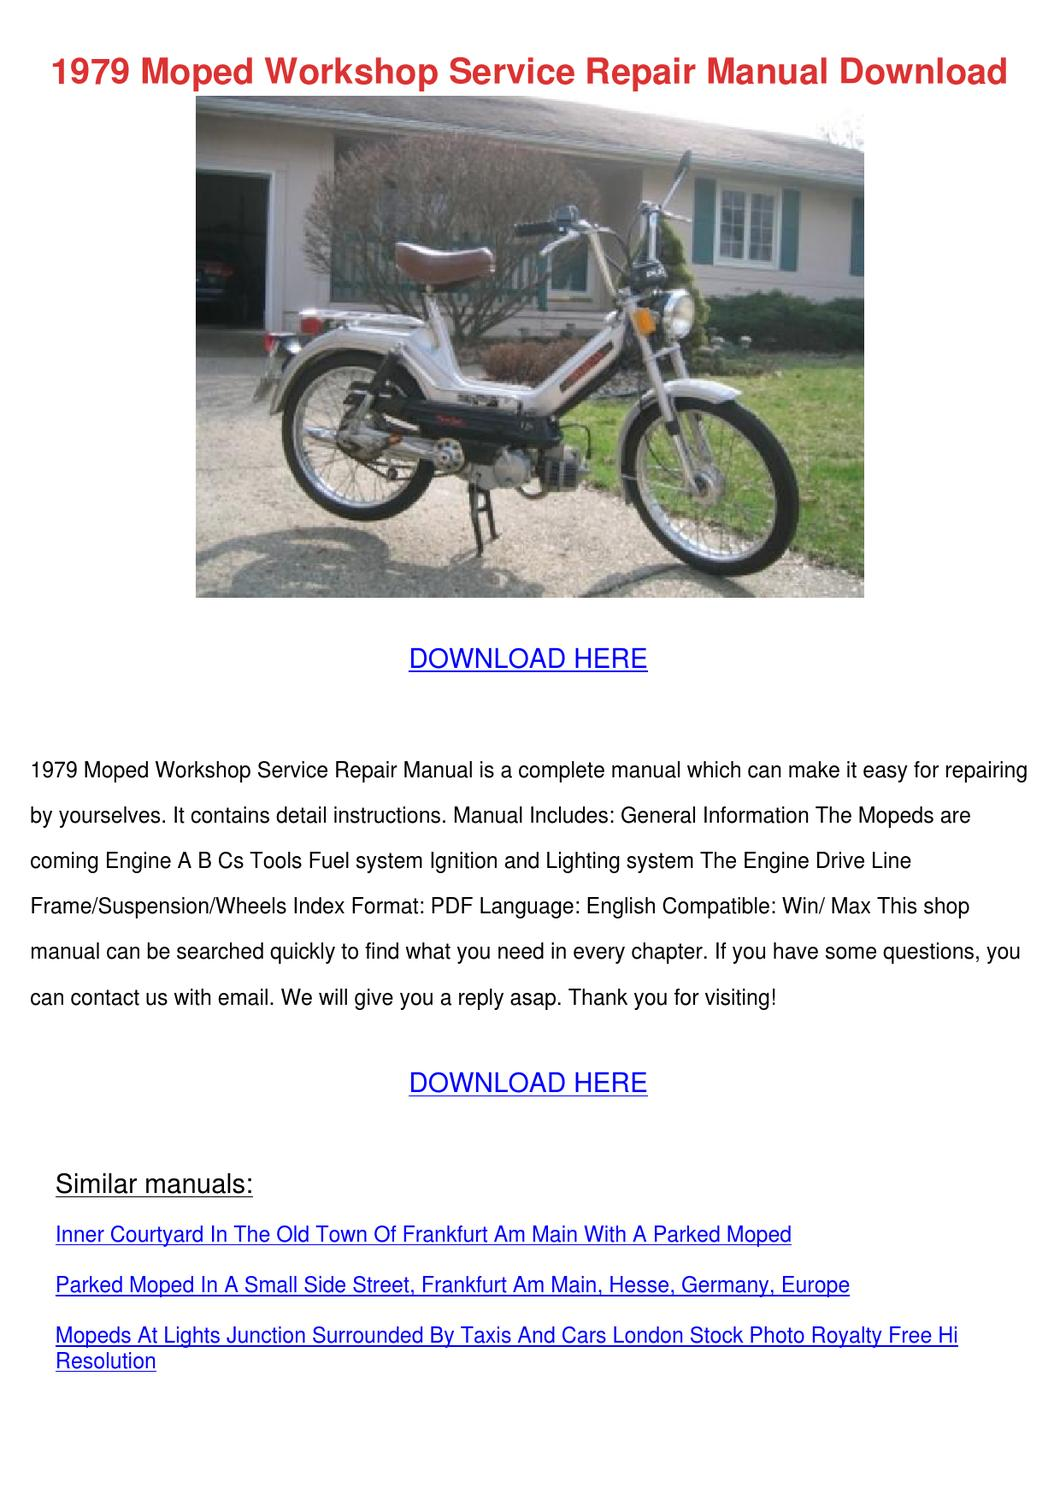 1979 Moped Workshop Service Repair Manual Dow by MaxMcnally - issuu